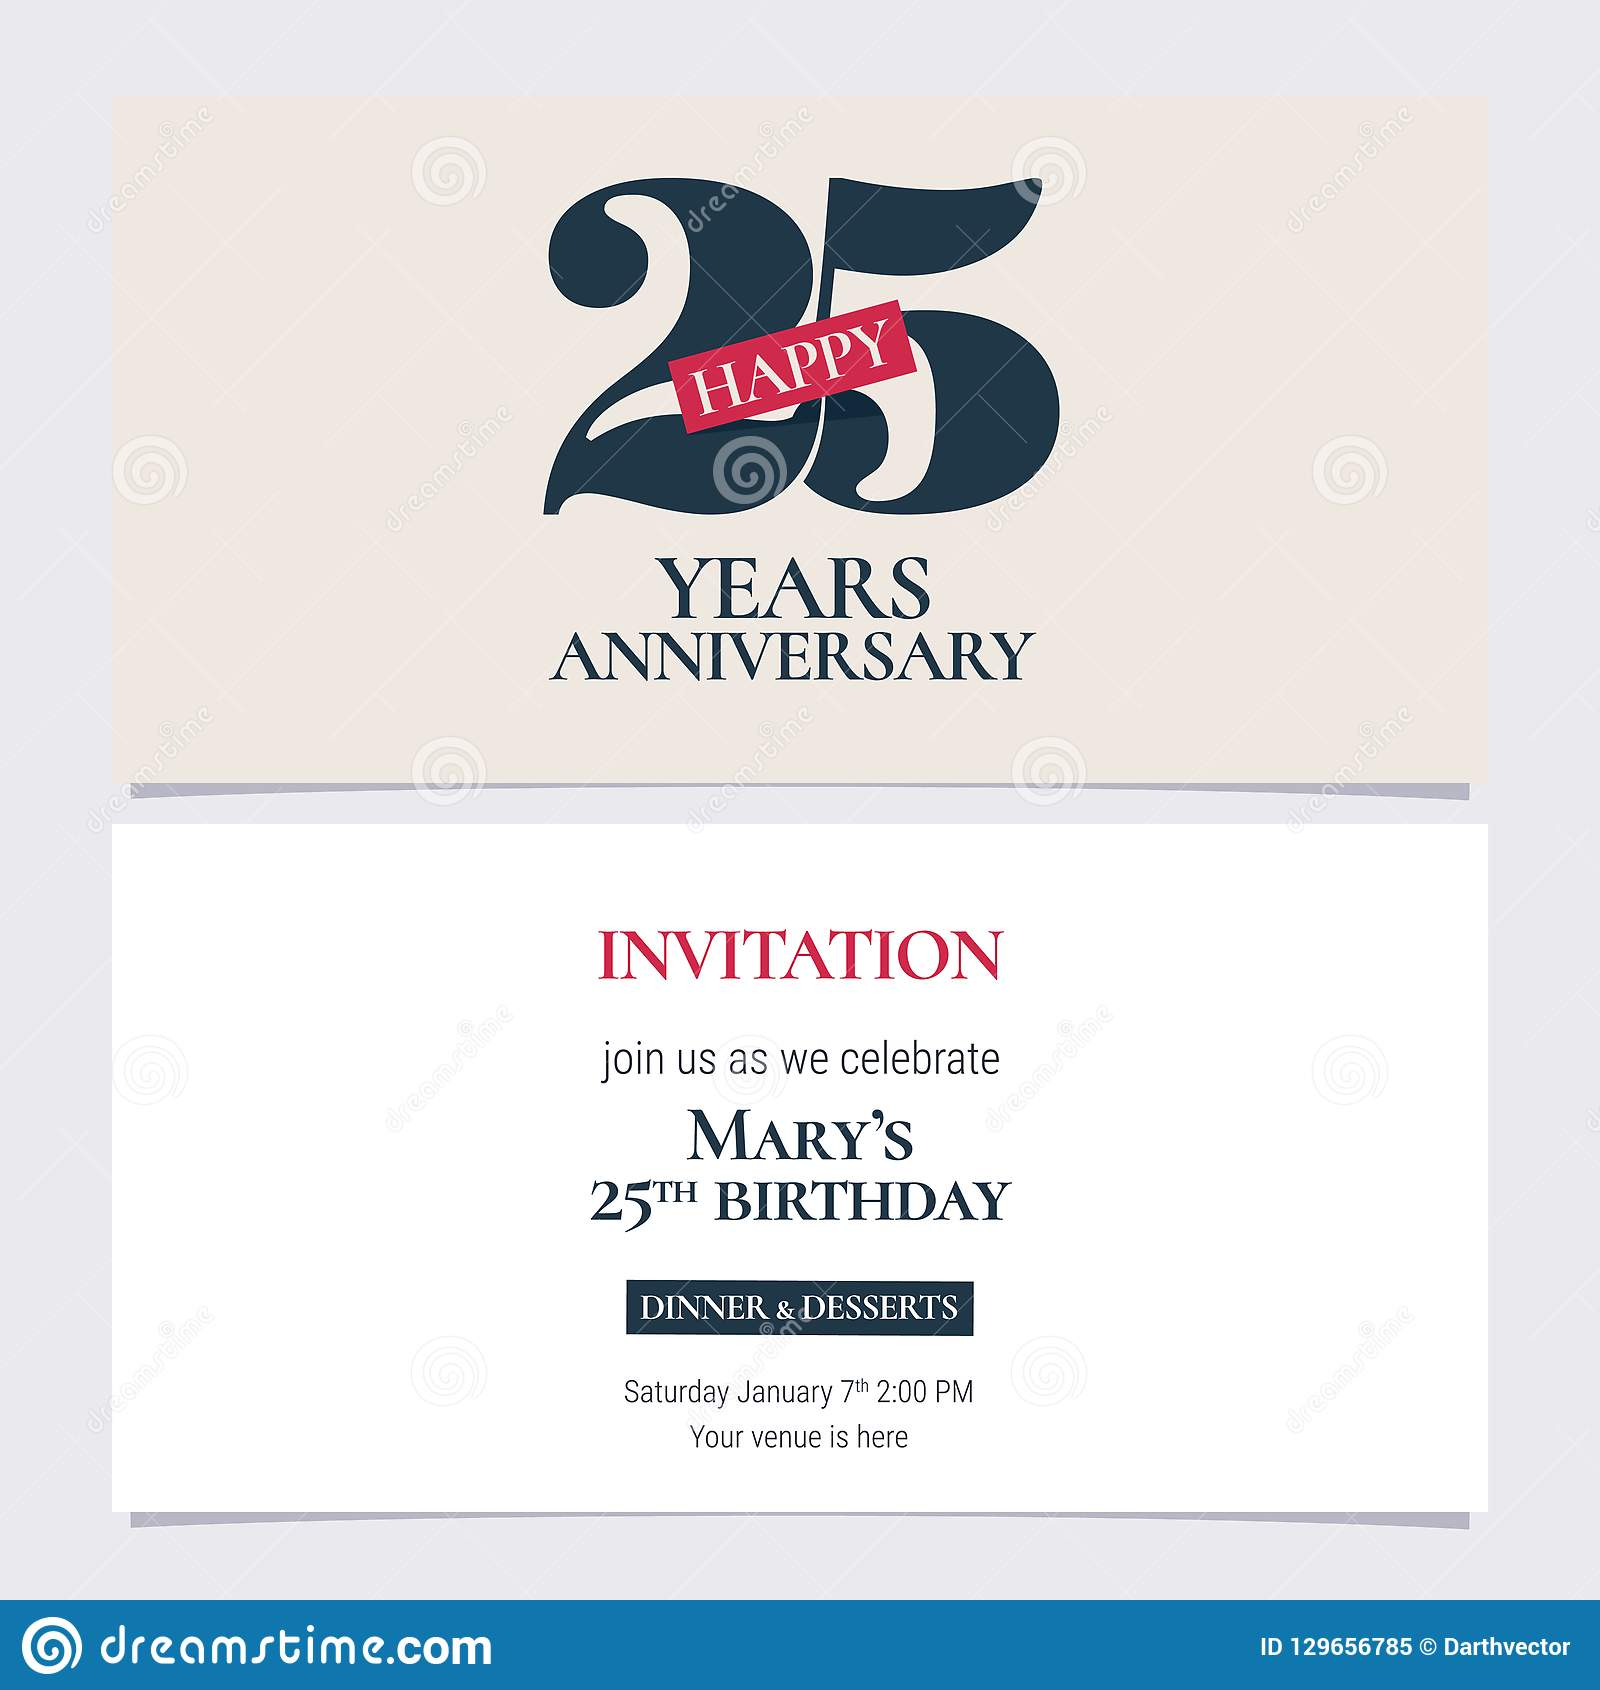 25 Years Anniversary Invitation Vector Illustration Graphic Design Template With Elegant Logo For 25th Party Or Dinner Invite